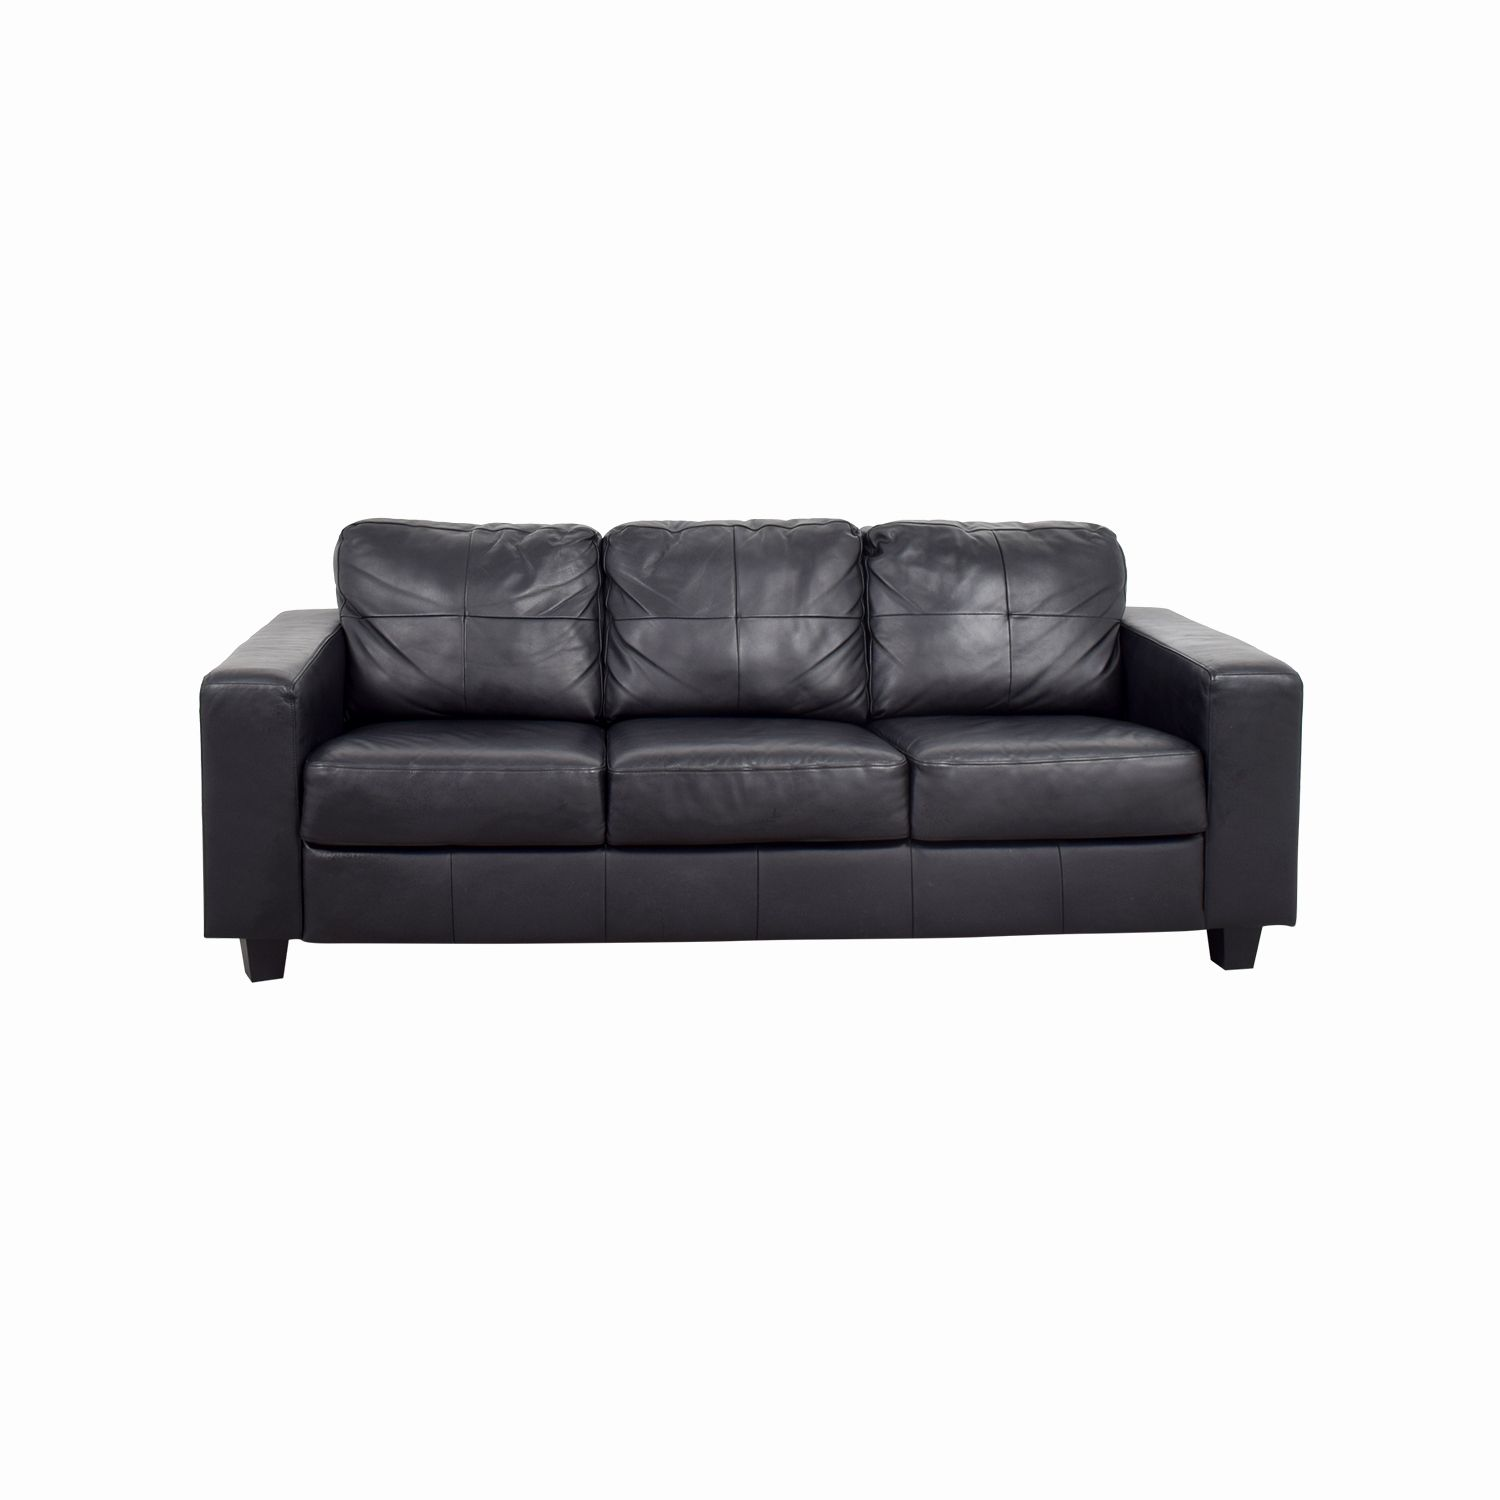 Beautiful Ikea Sofa Leather Pictures 44 Off Ikea Ikea Skogaby Black Leather  Sofa Sofas